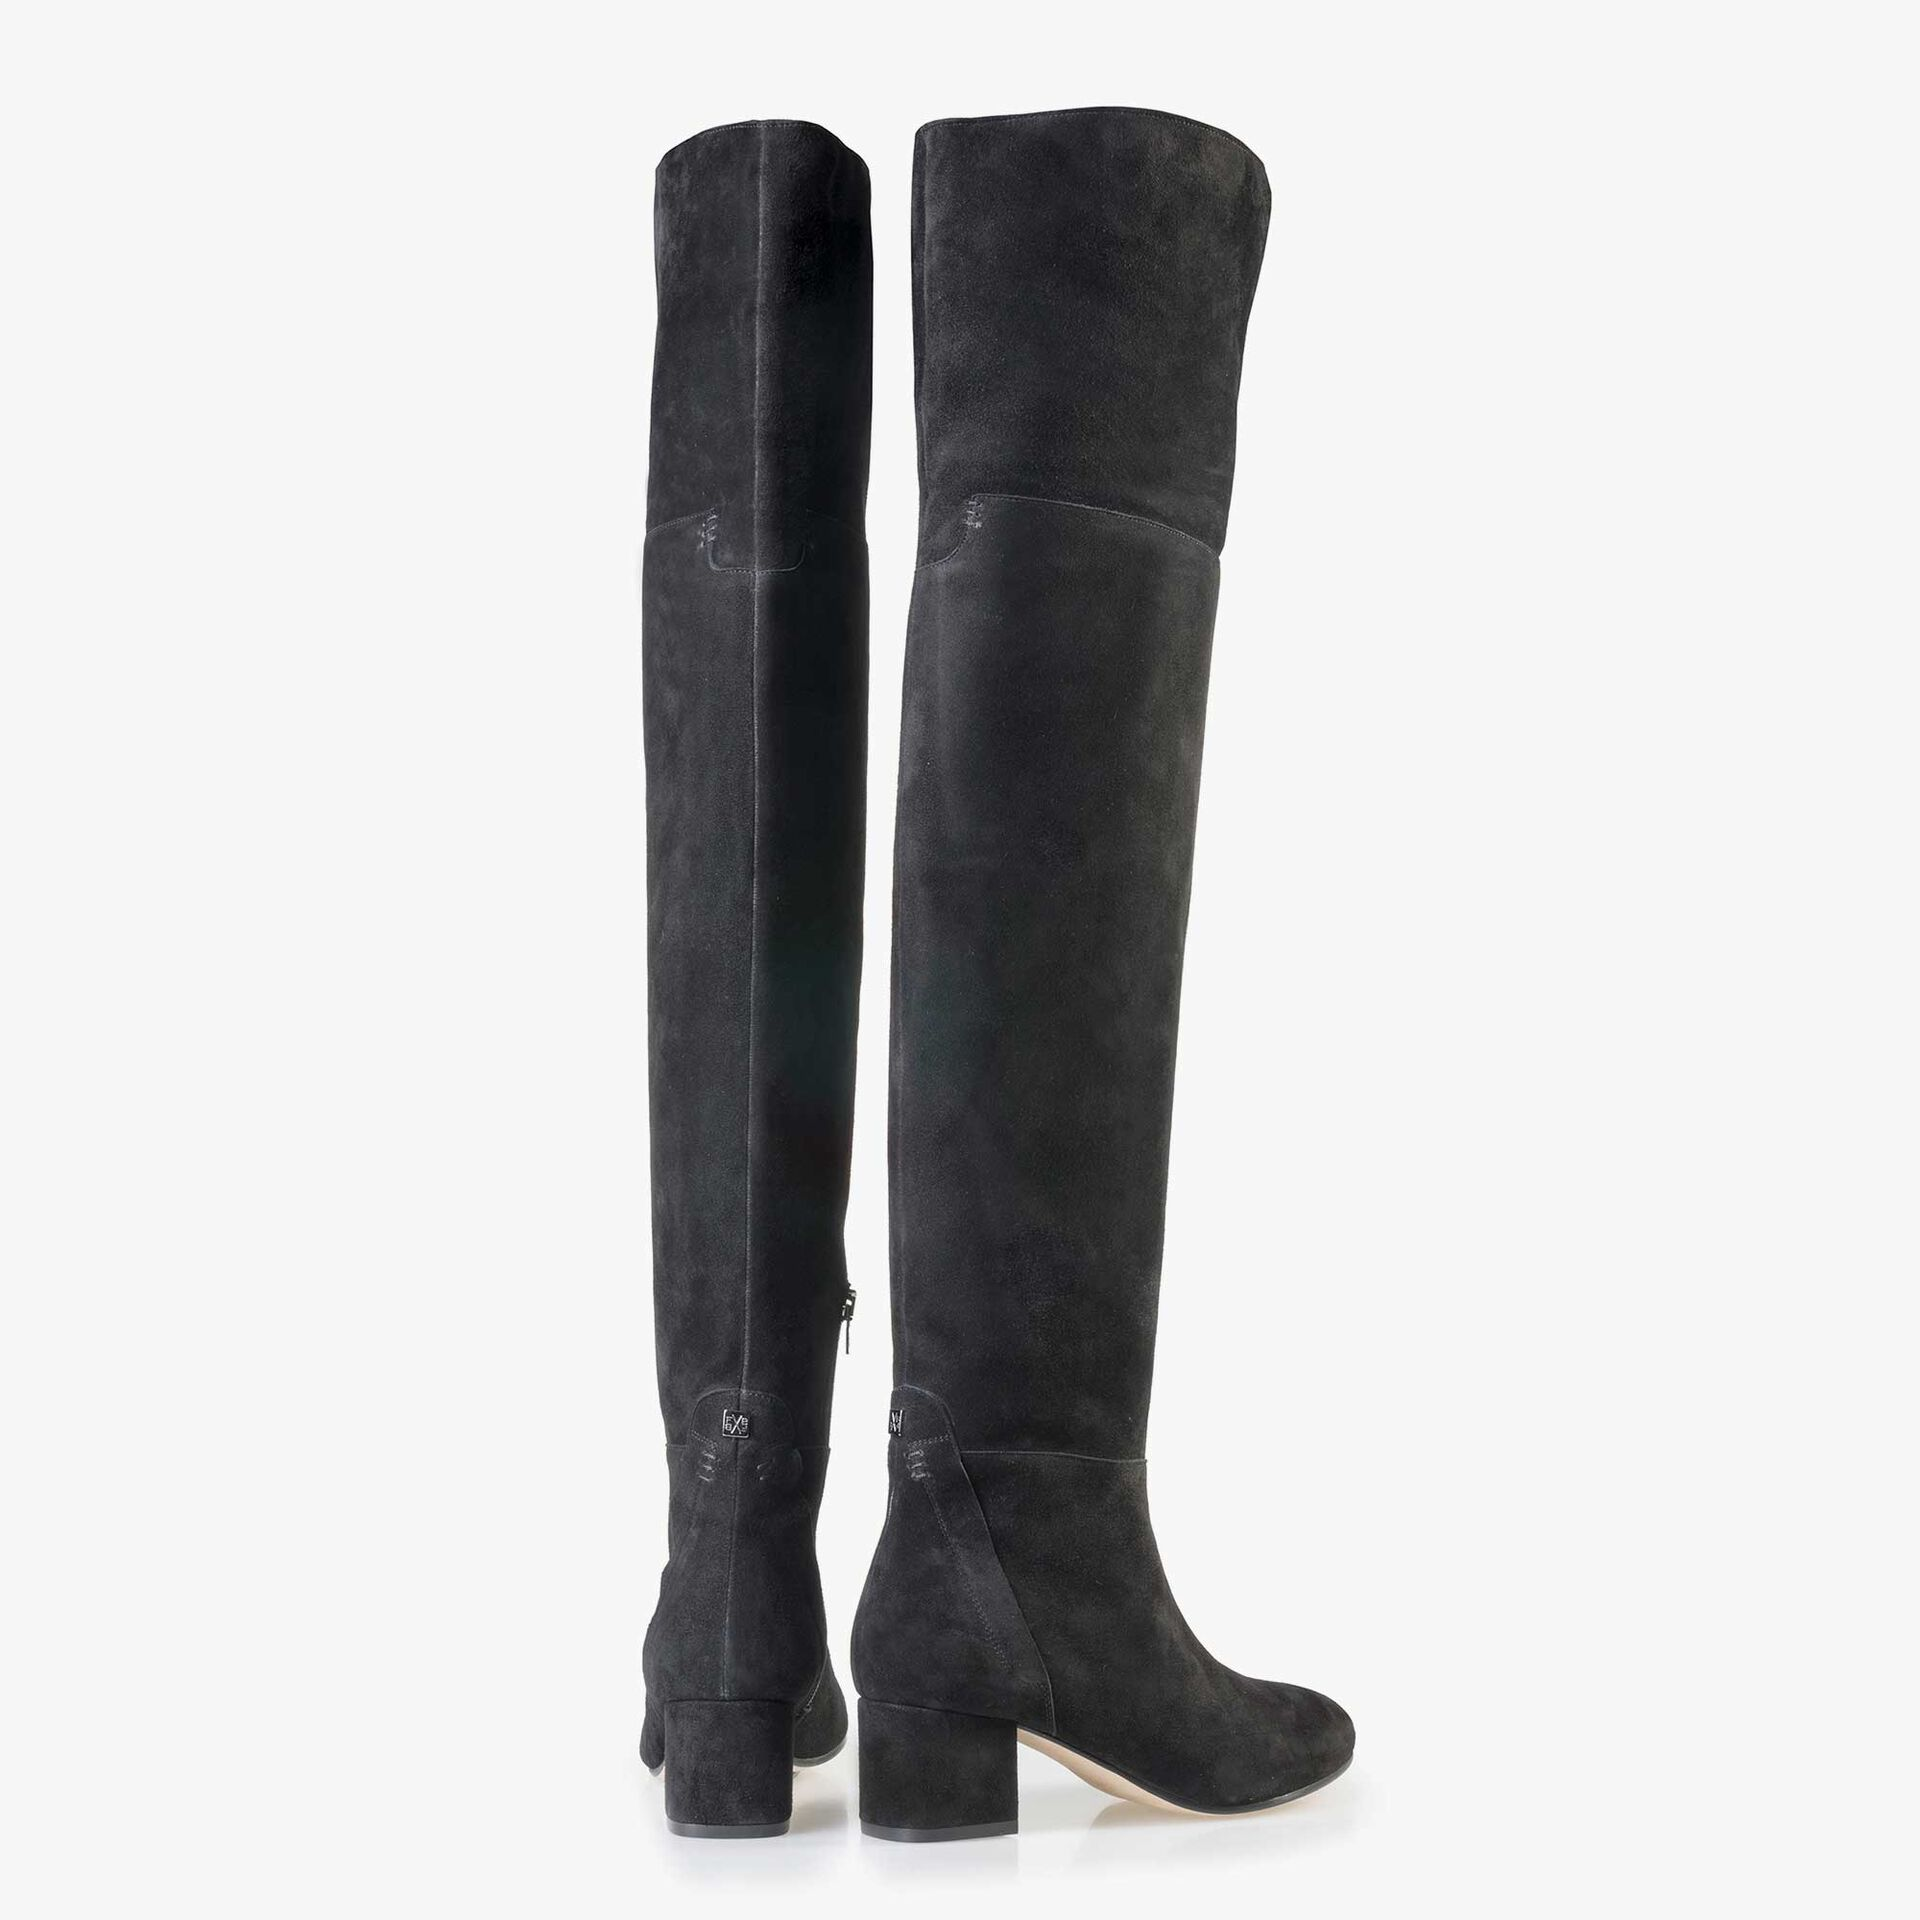 Floris van Bommel women's black suede leather over knee boots